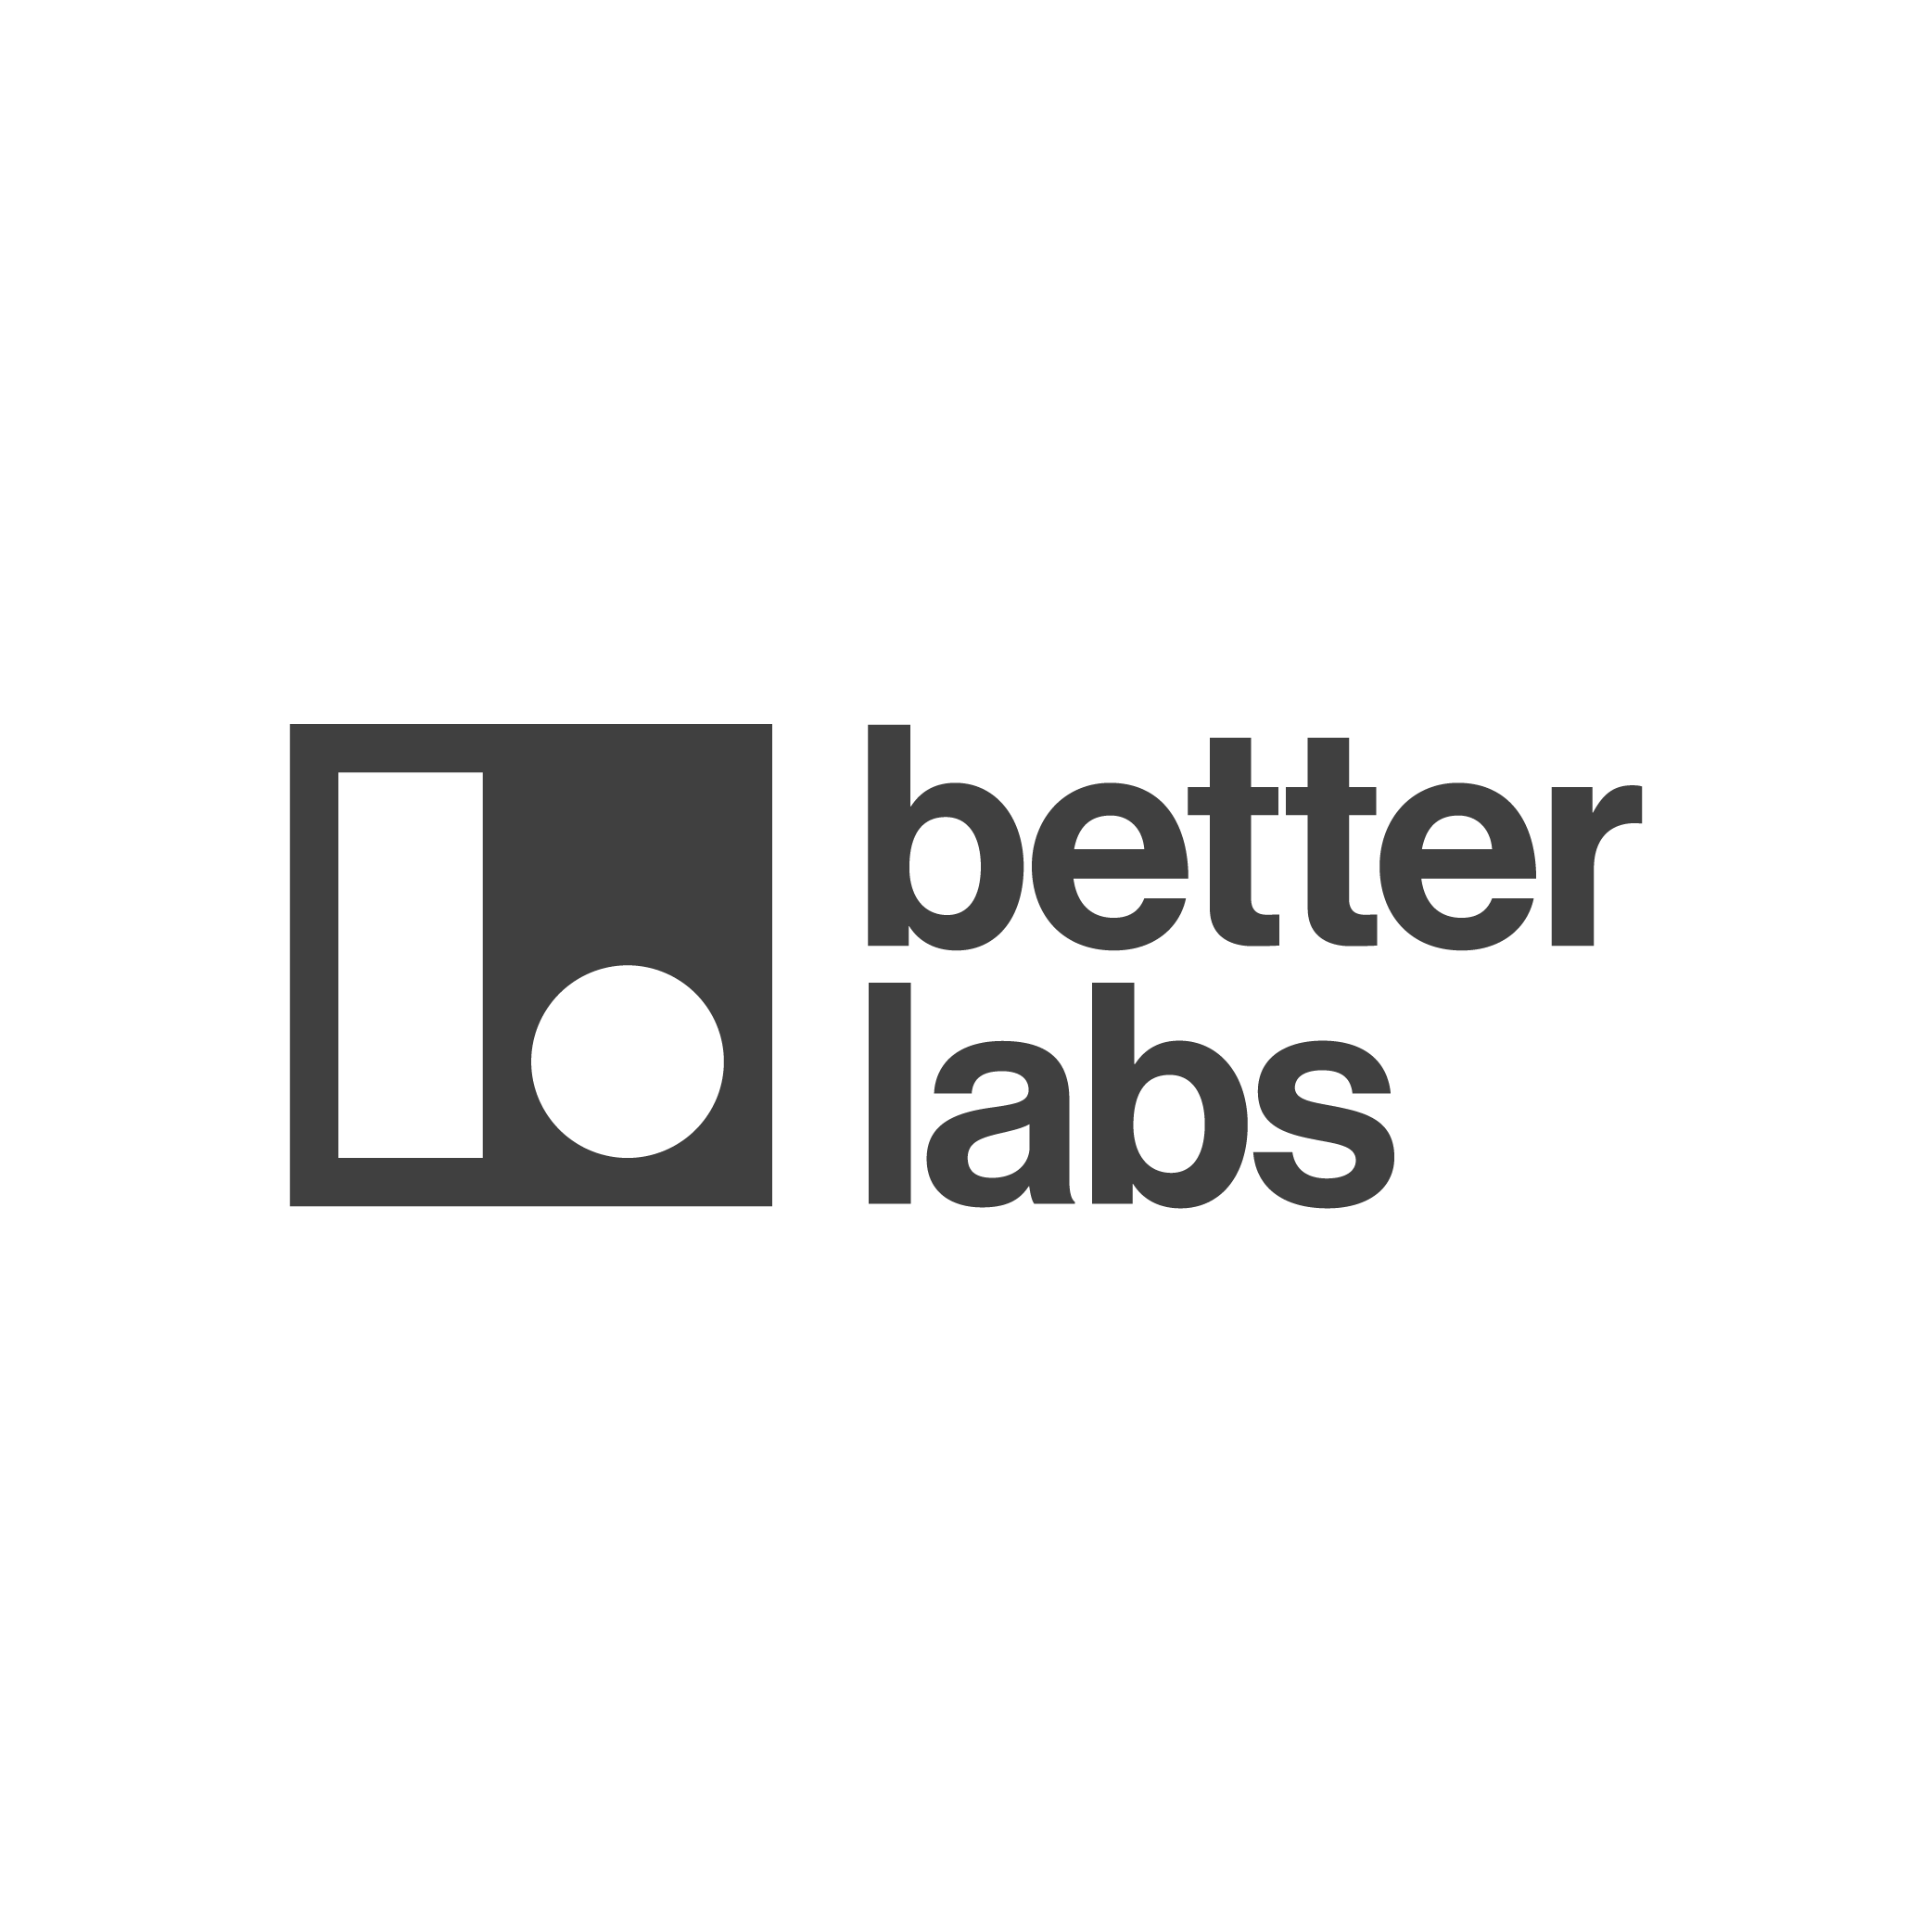 betterlabs.png